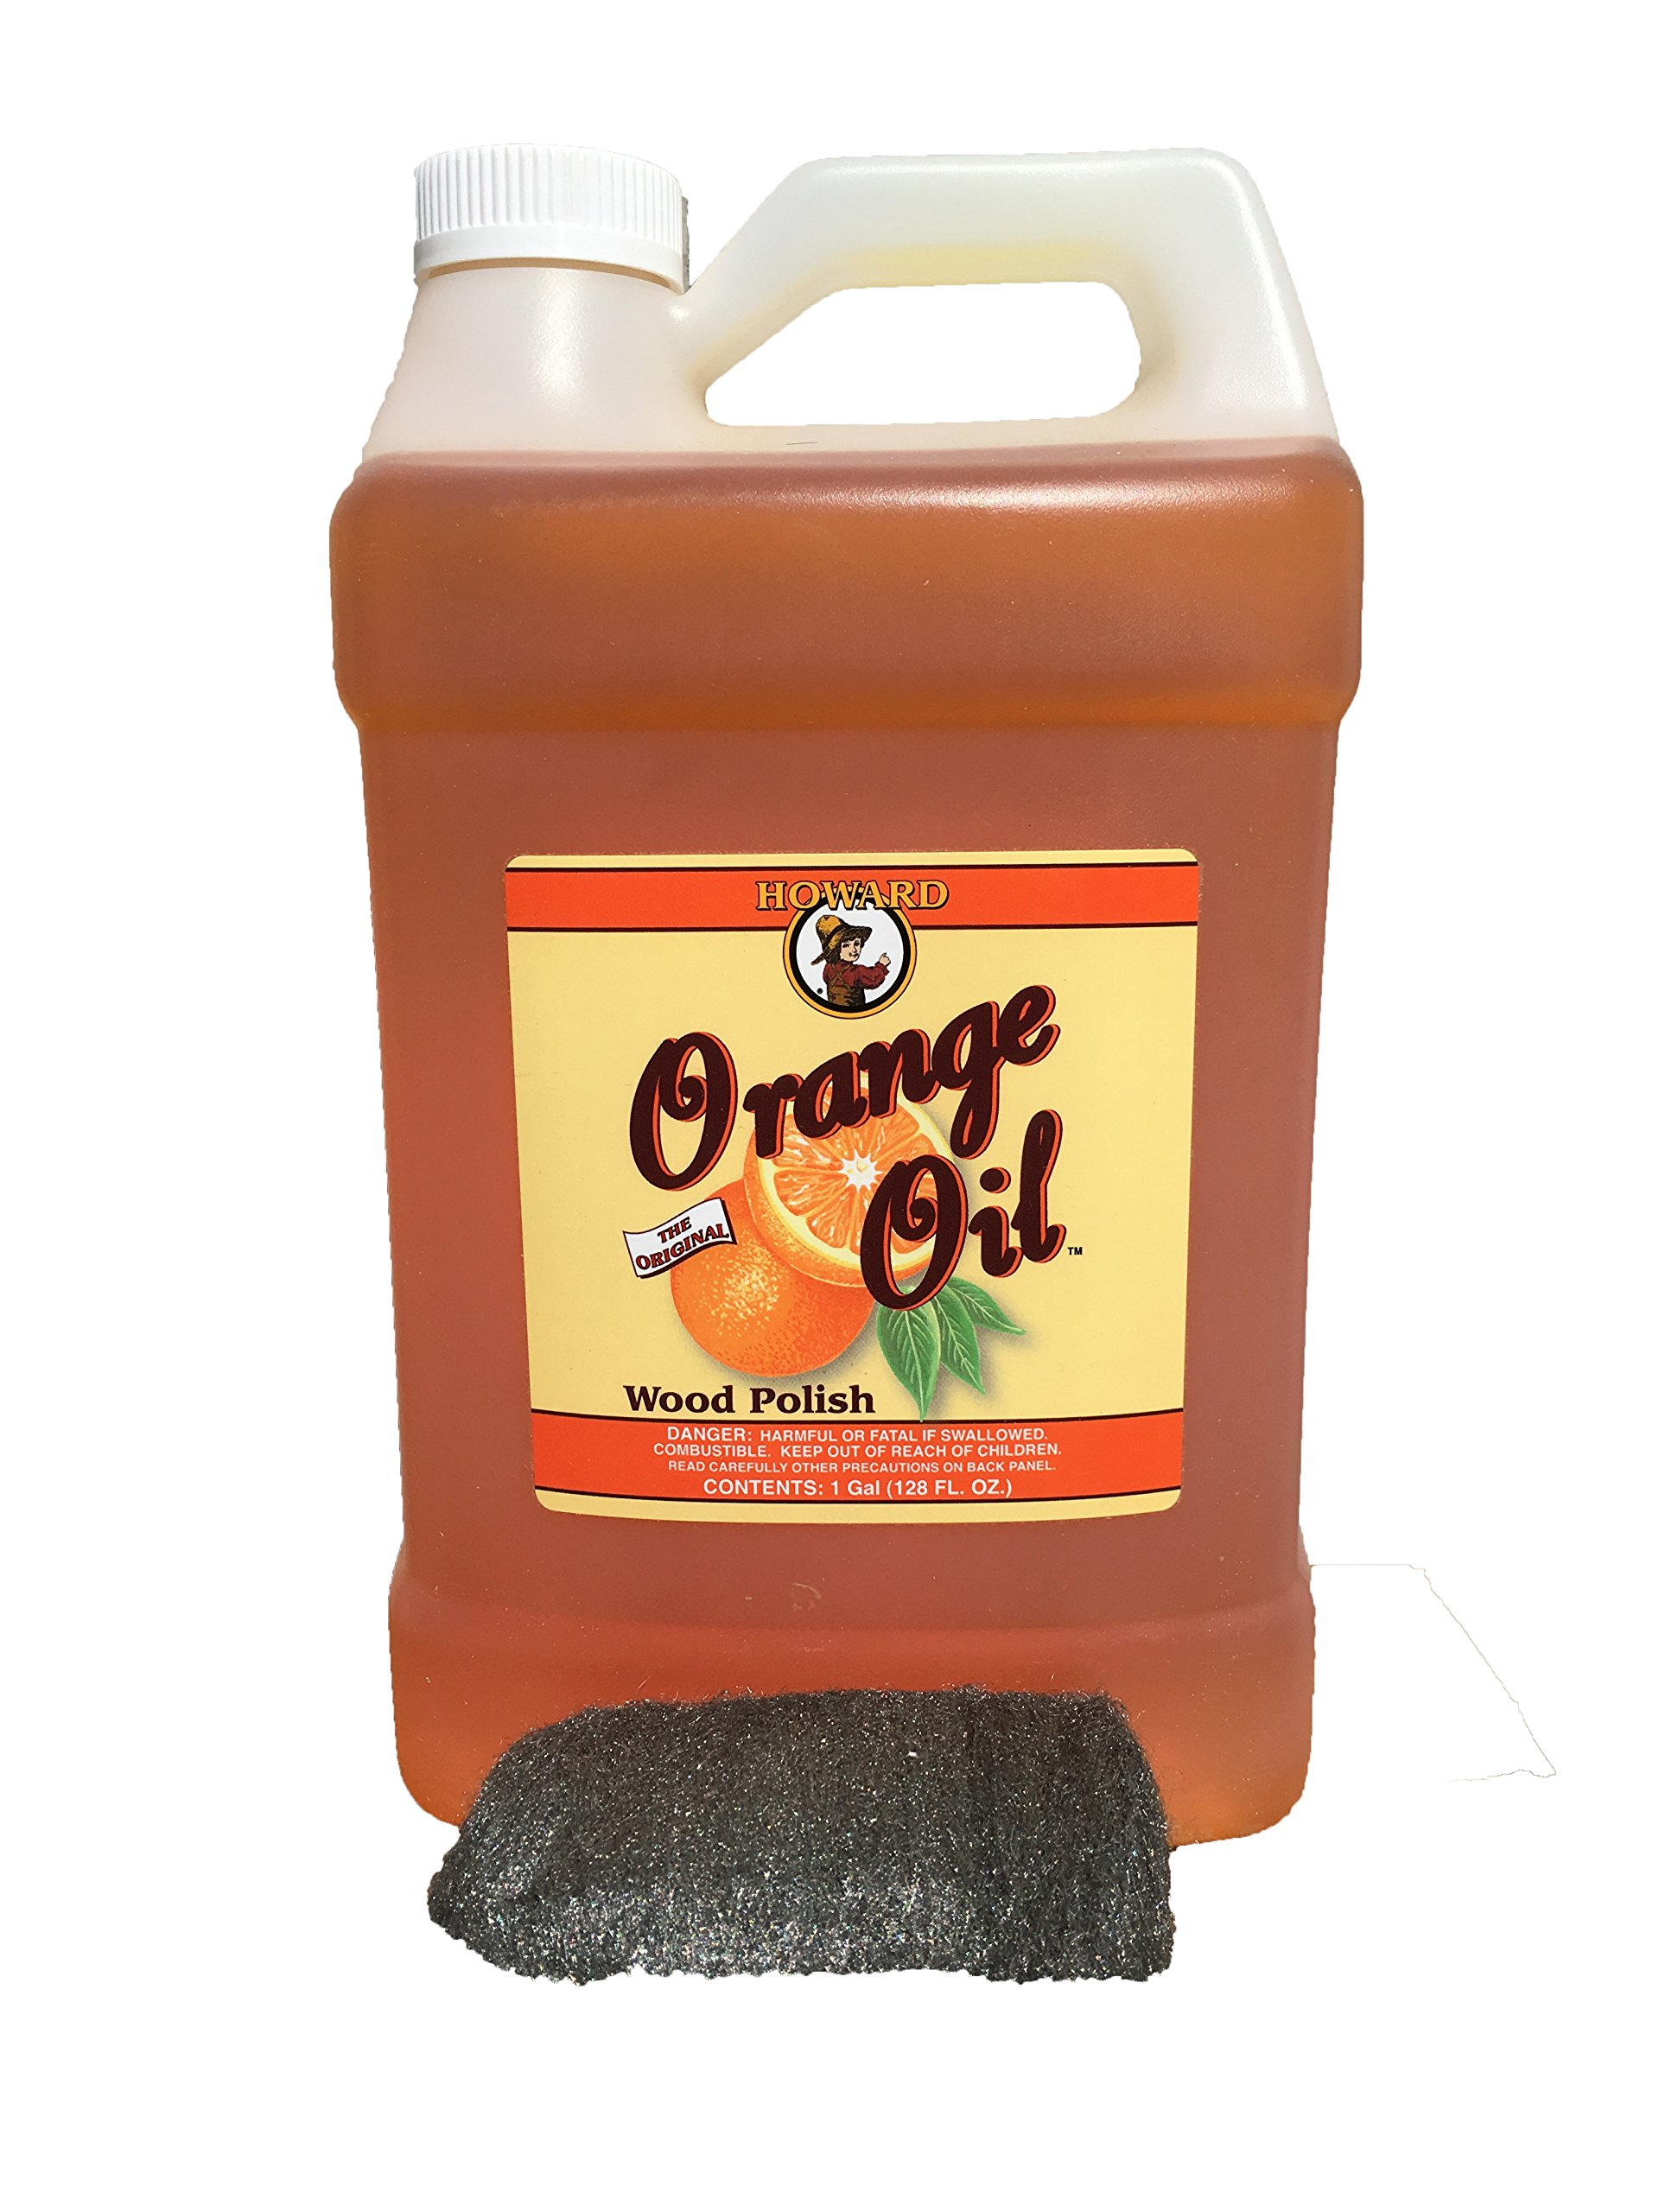 Howard Orange Oil 128 oz Gallon, Clean Kitchen Cabinets, Polish and Shine Wood Furniture, Orange Wood Cleaner by Howard Products